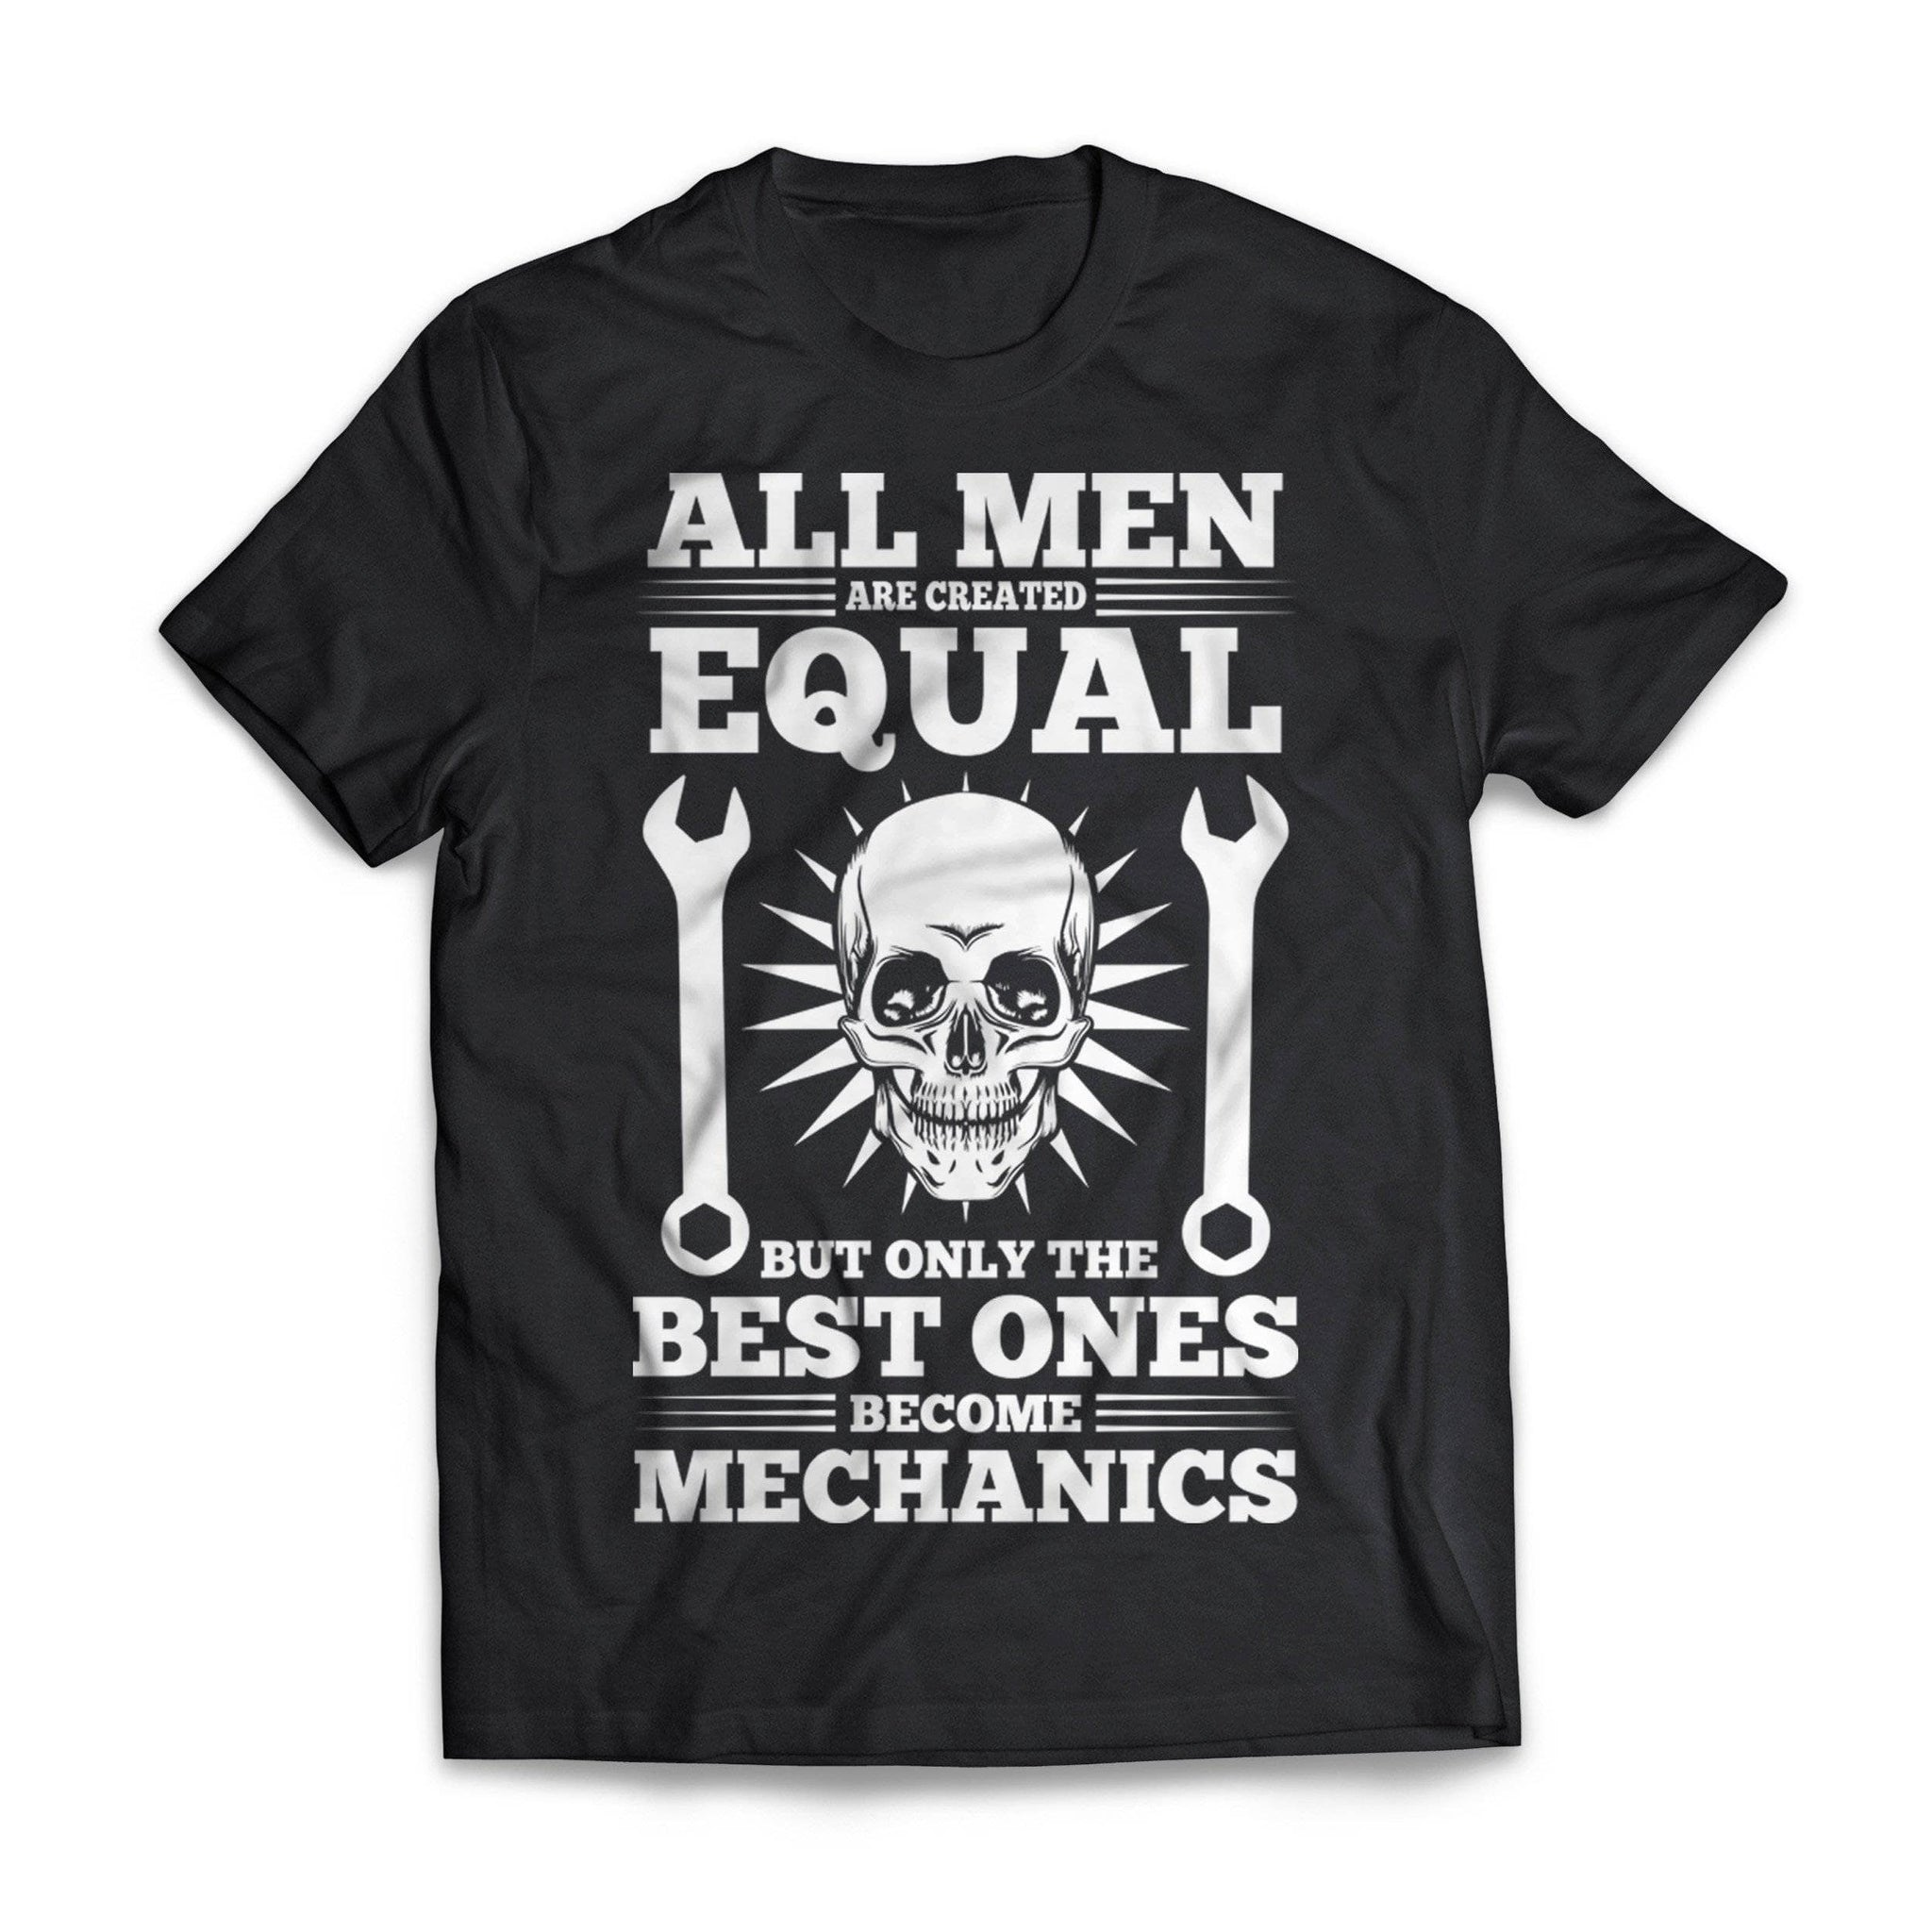 All Men Mechanics